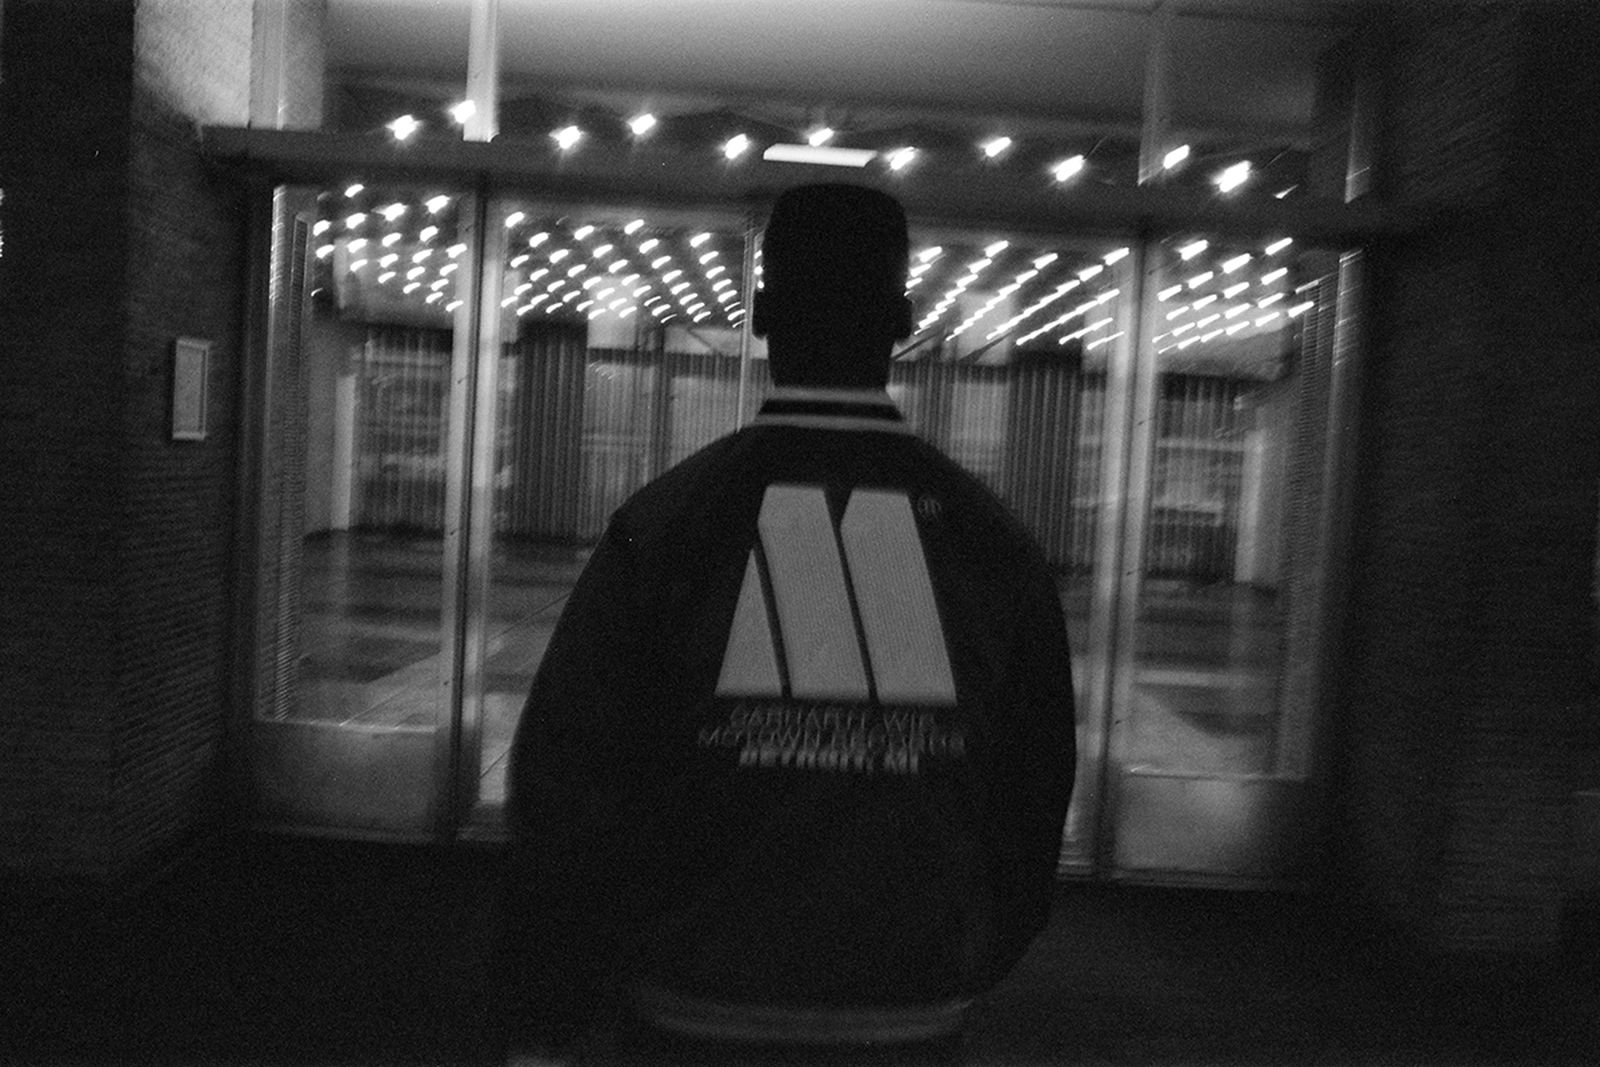 Carhartt WIP Motown Records collection